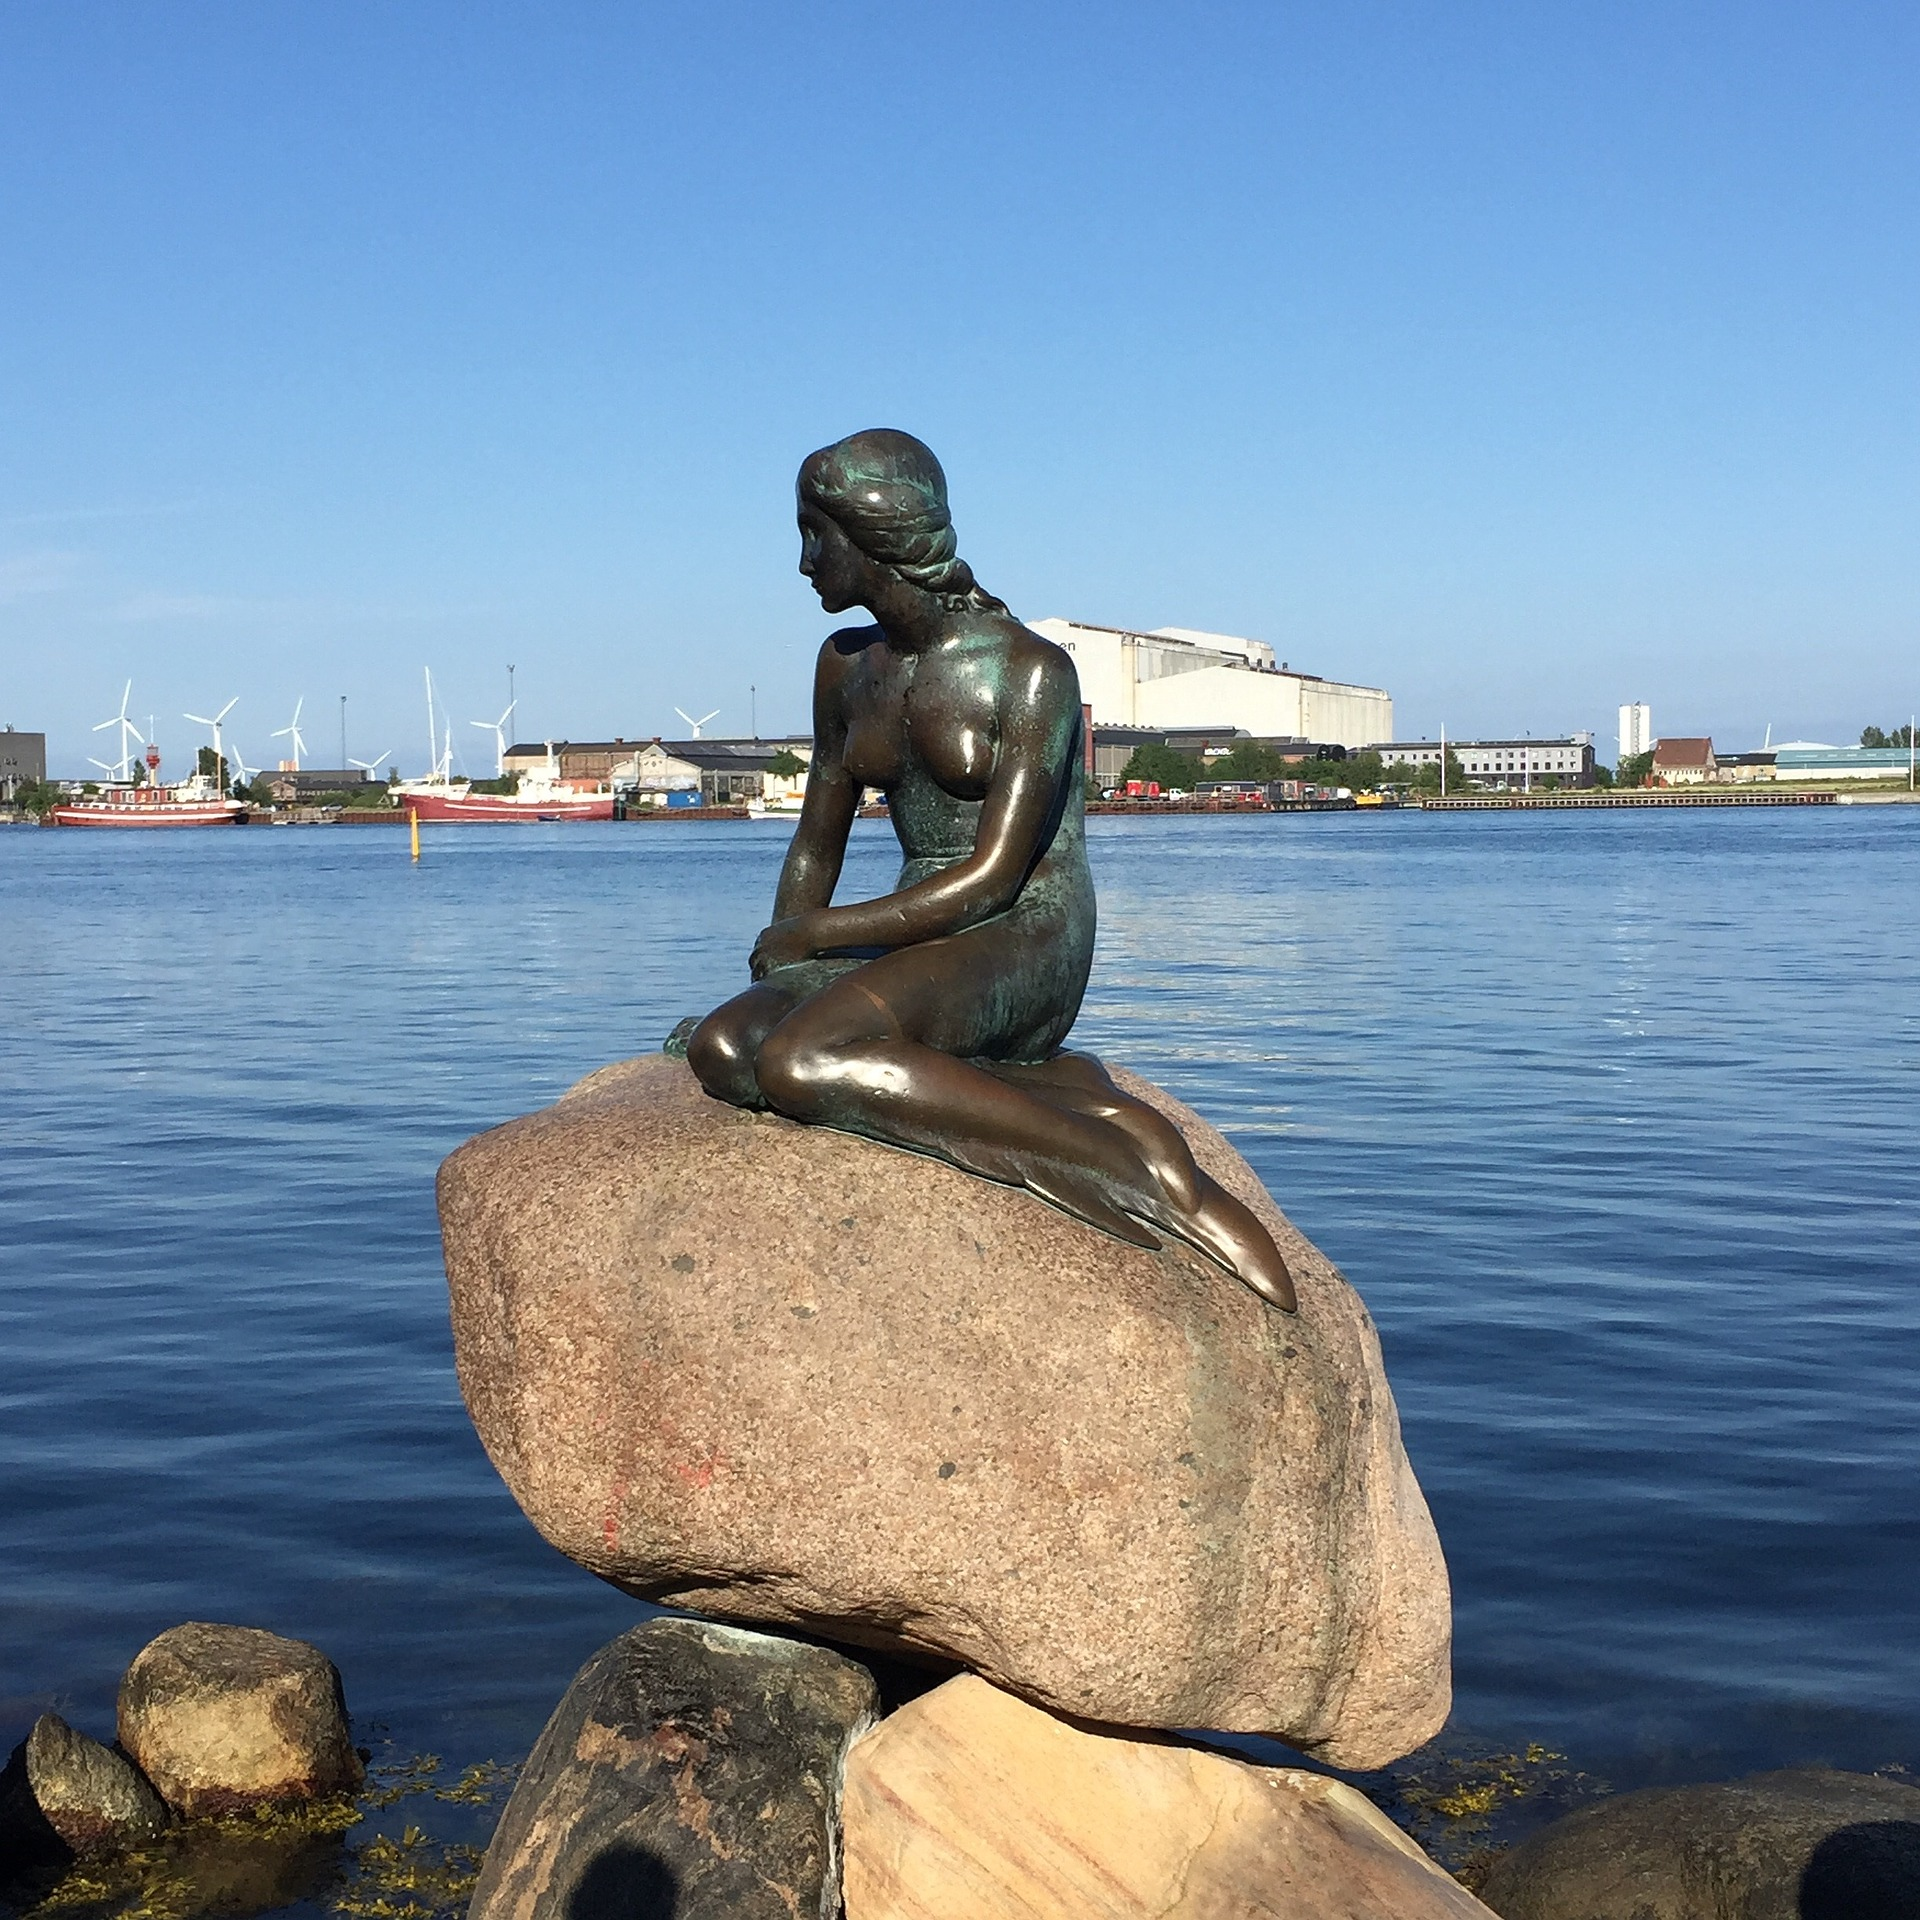 Little Mermaid statue, Copenhagen, Denmark